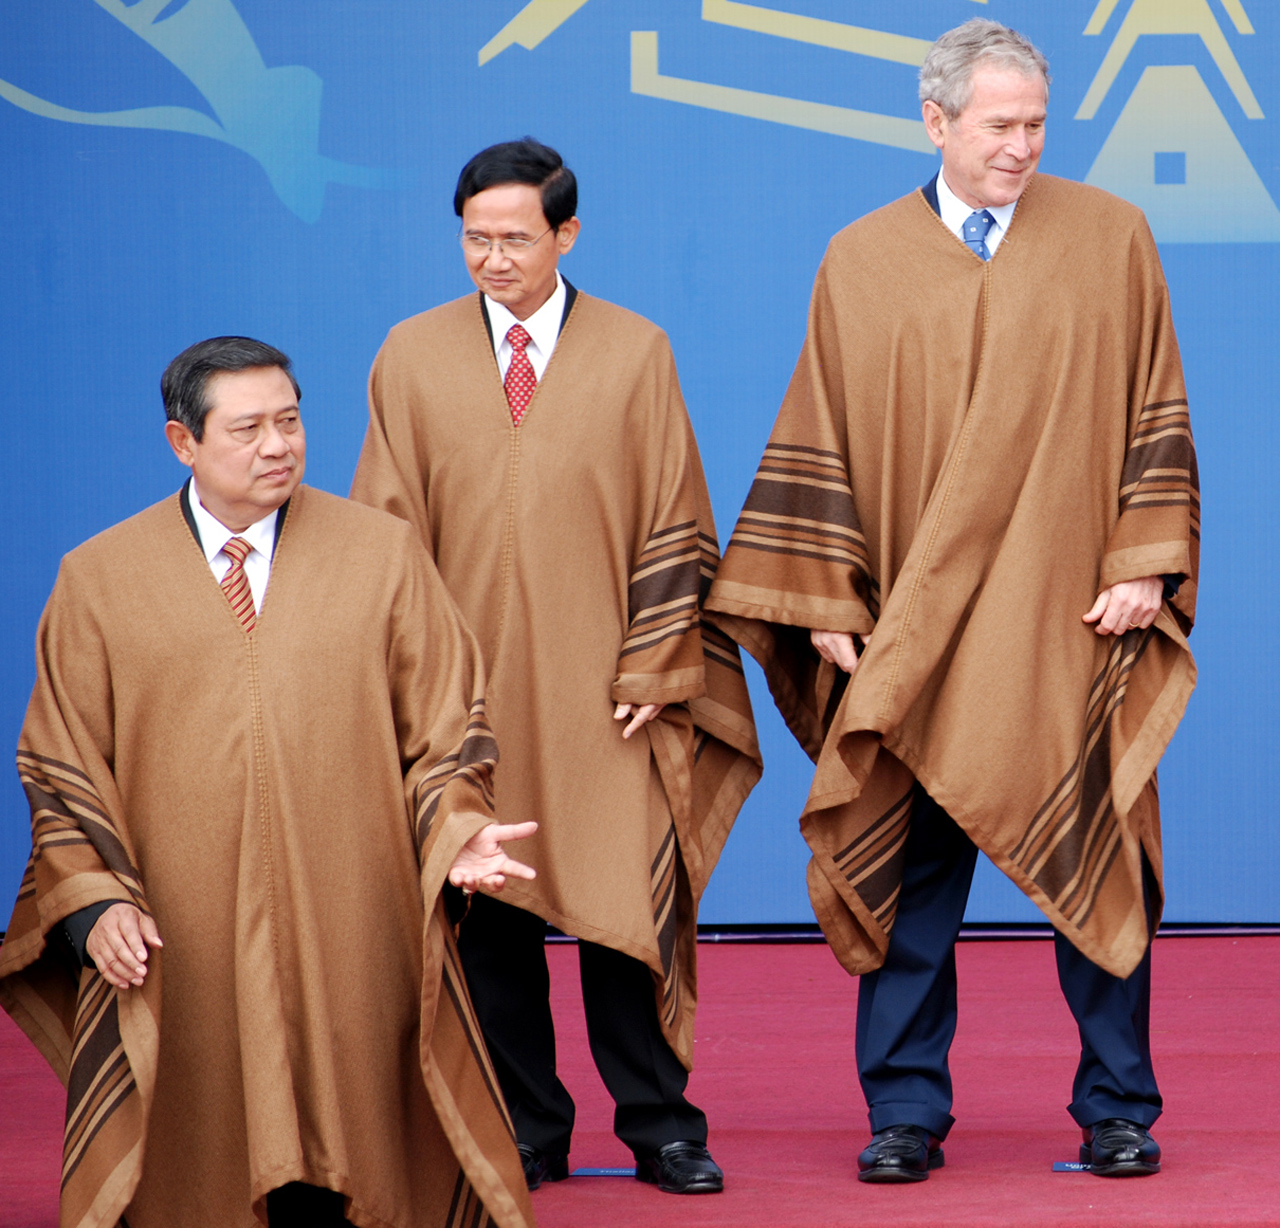 Bush & Friends do the APEC boogie